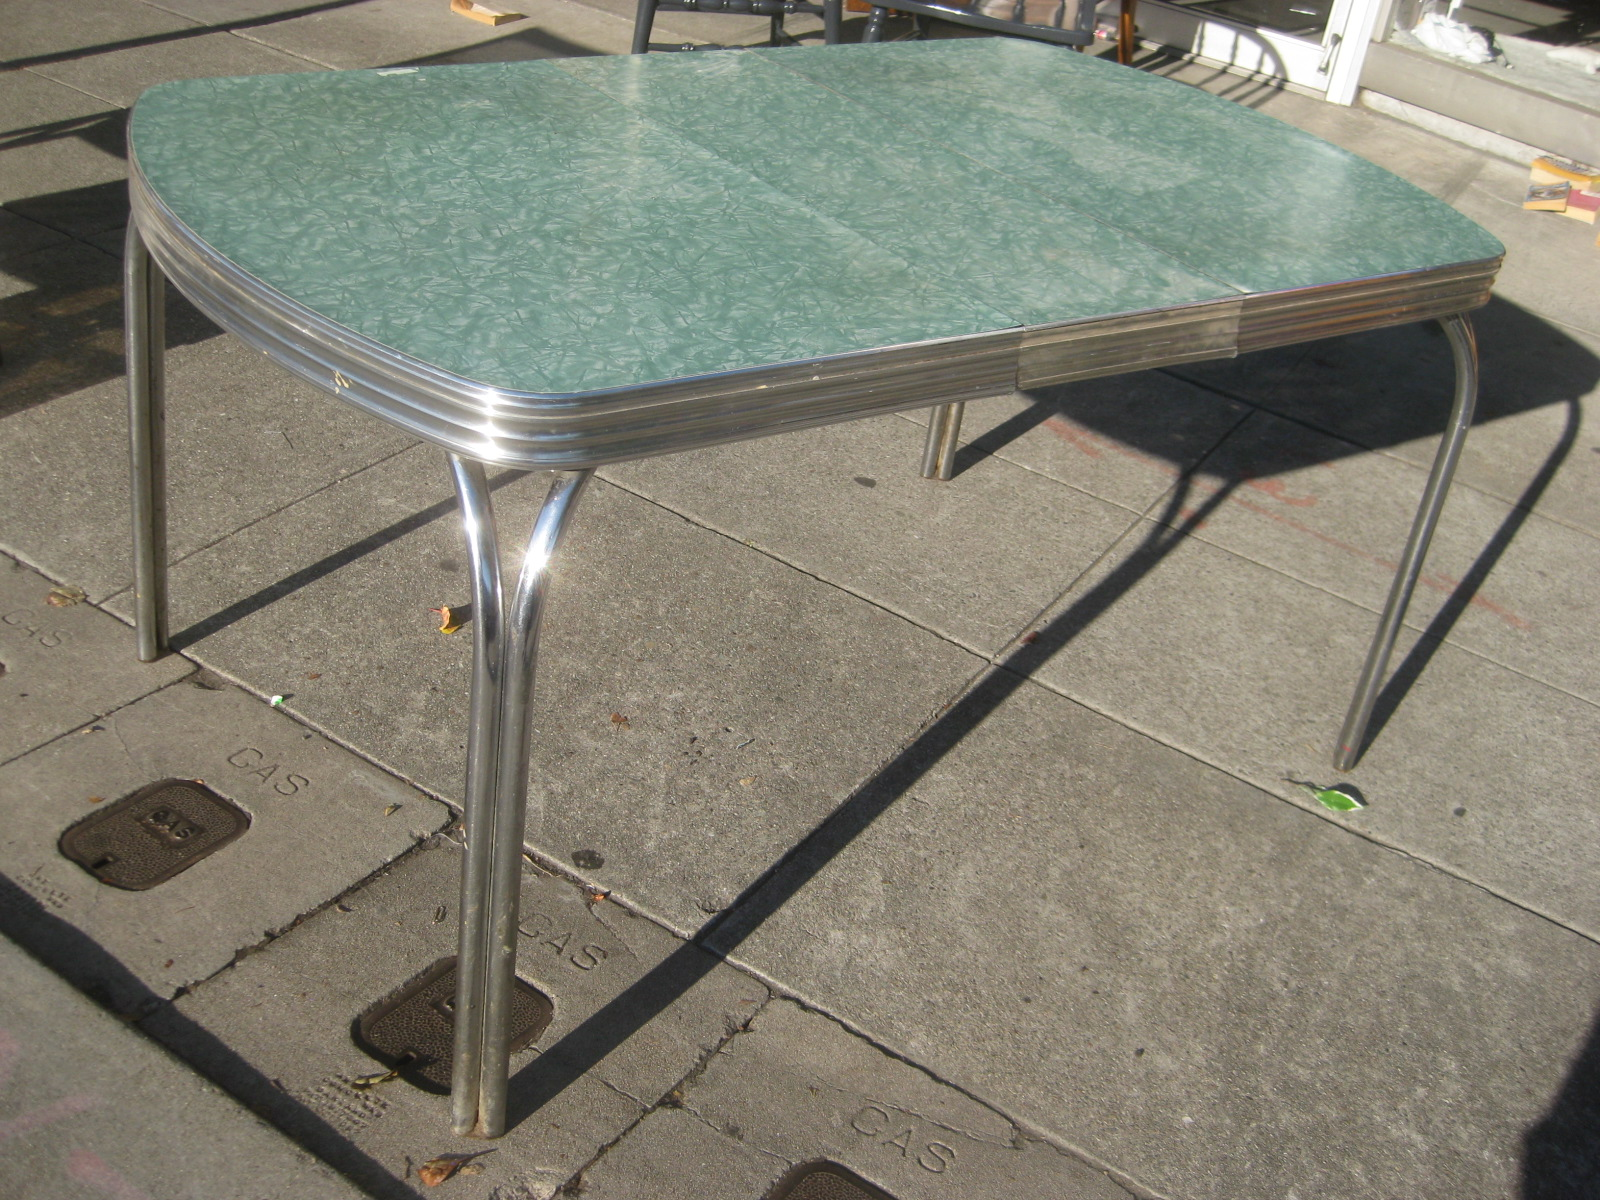 50s chrome formica kitchen table 65 s kitchen table SOLD 50s Chrome Formica Kitchen Table 65